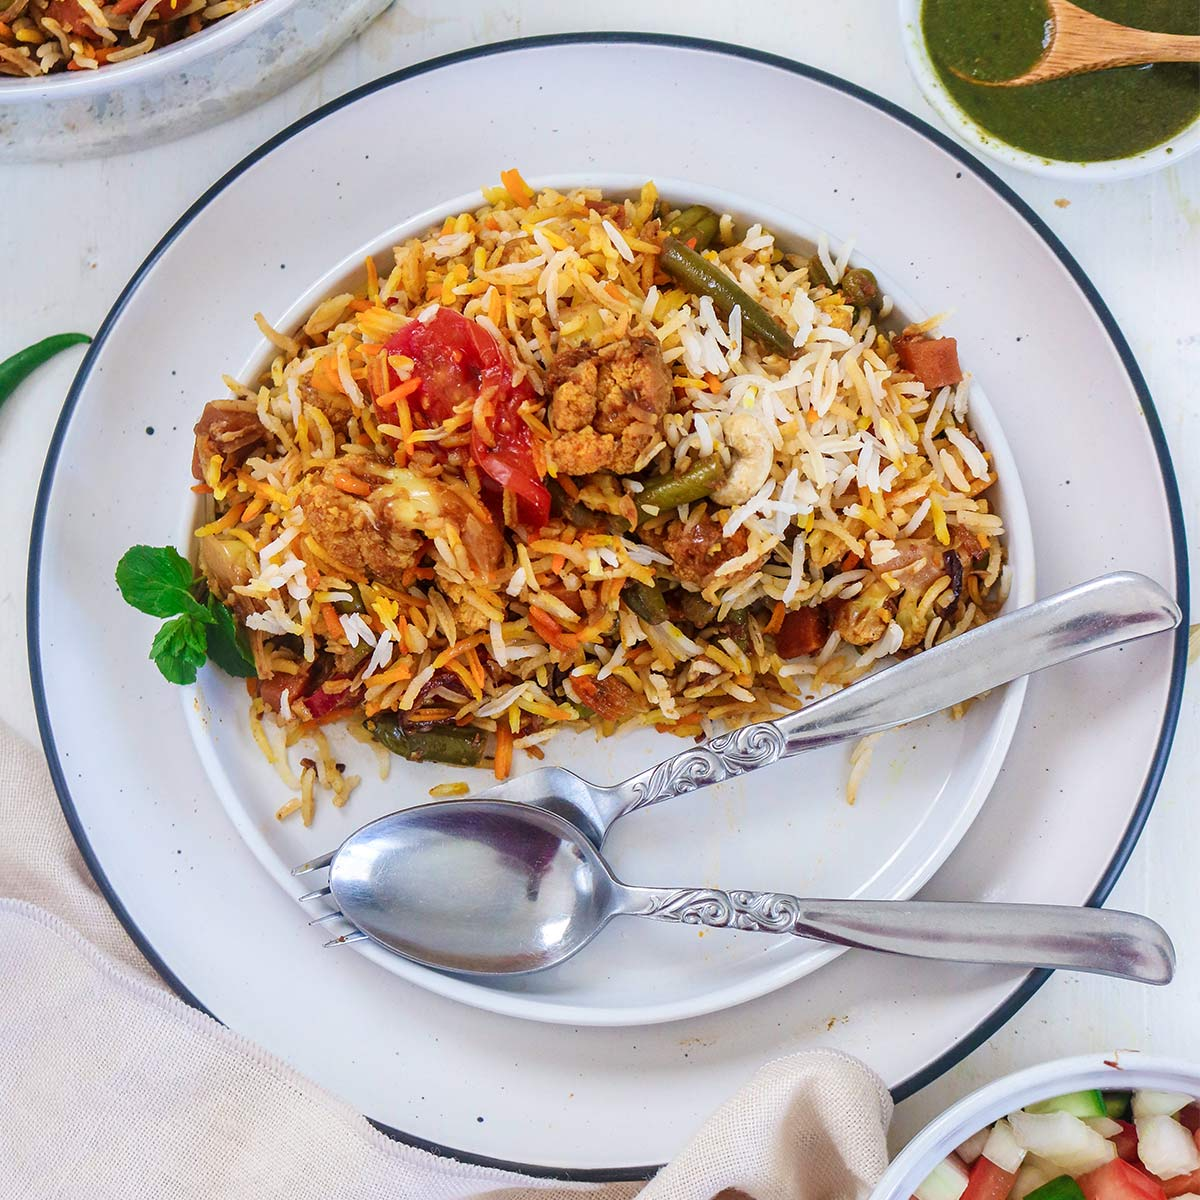 vegan biryani served in a plate with fork and spoon